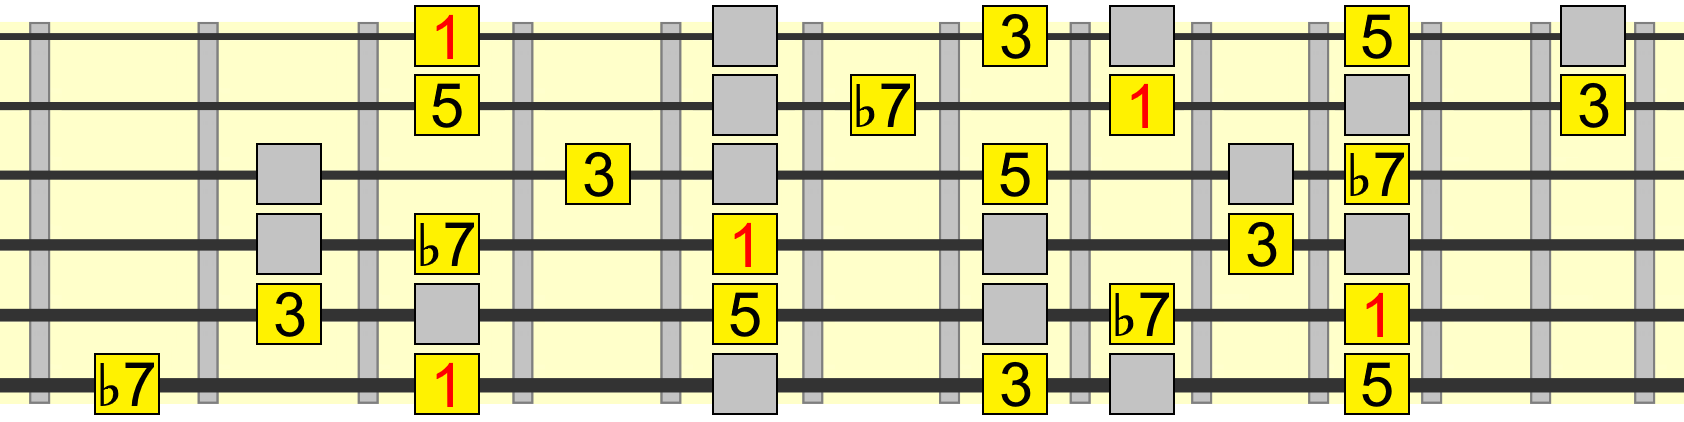 1 chord tones within mixolydian